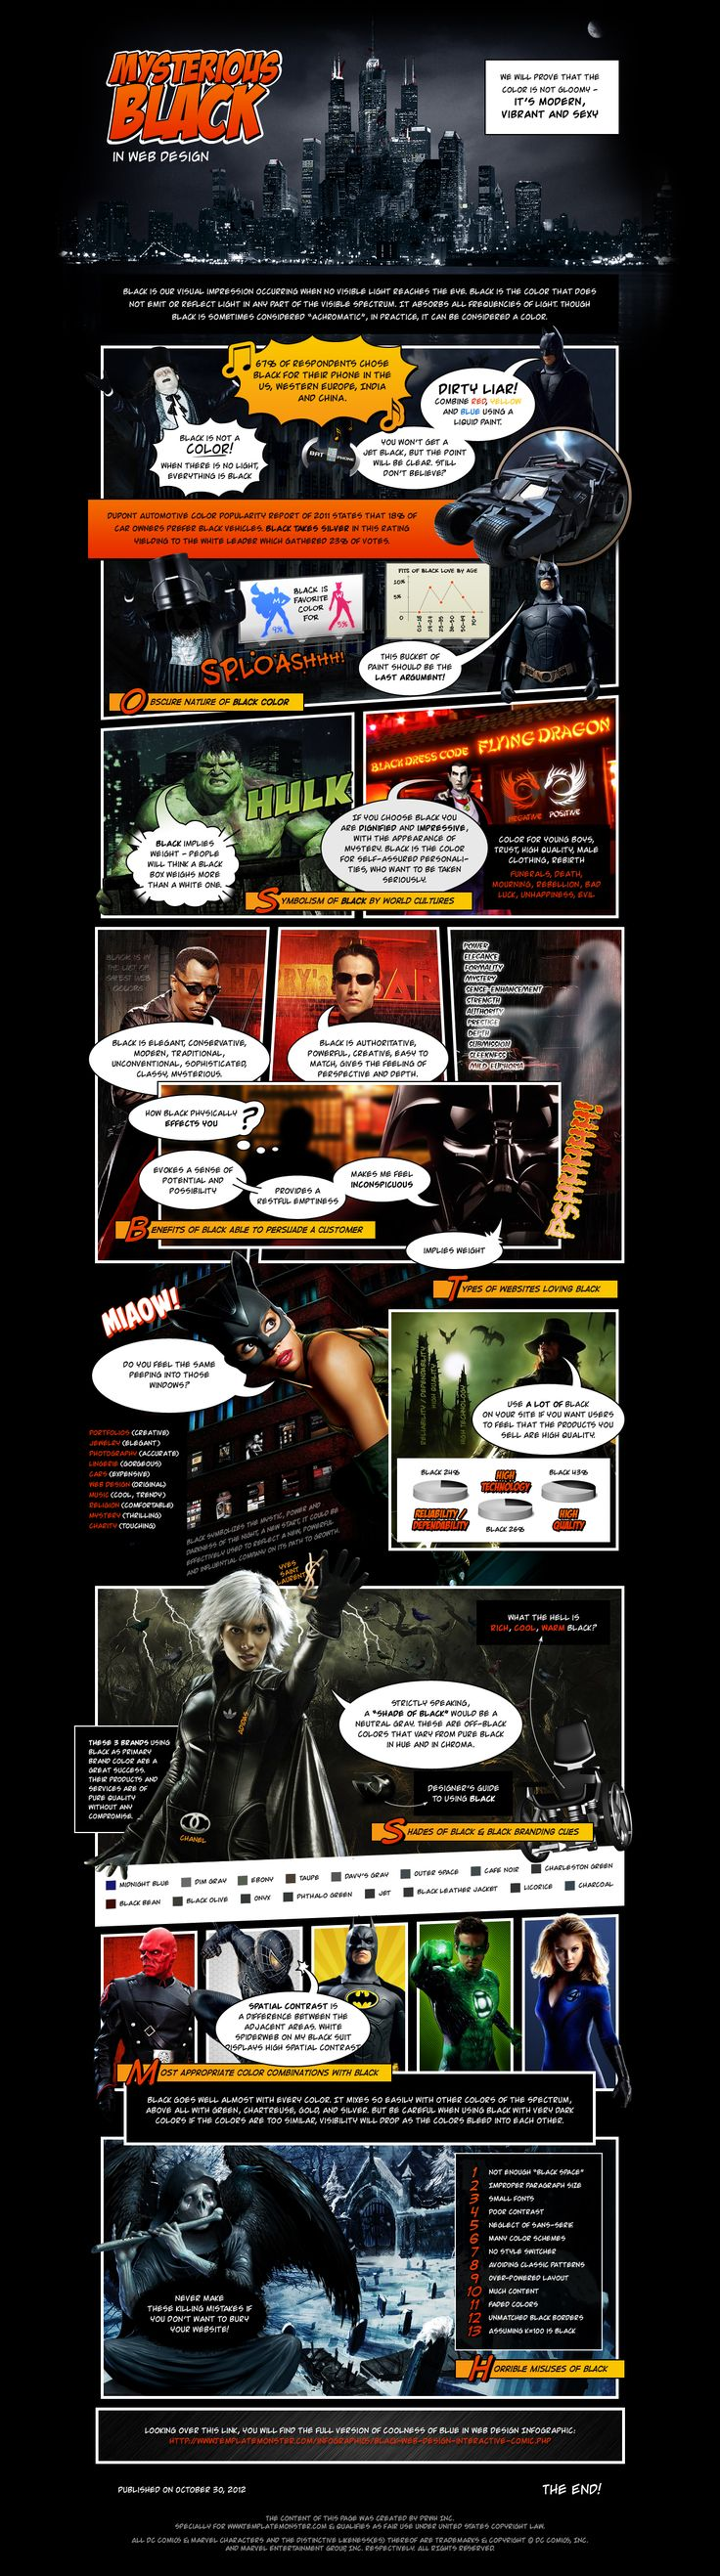 Black in #Web Design [Comic Style Interactive #Infographic]